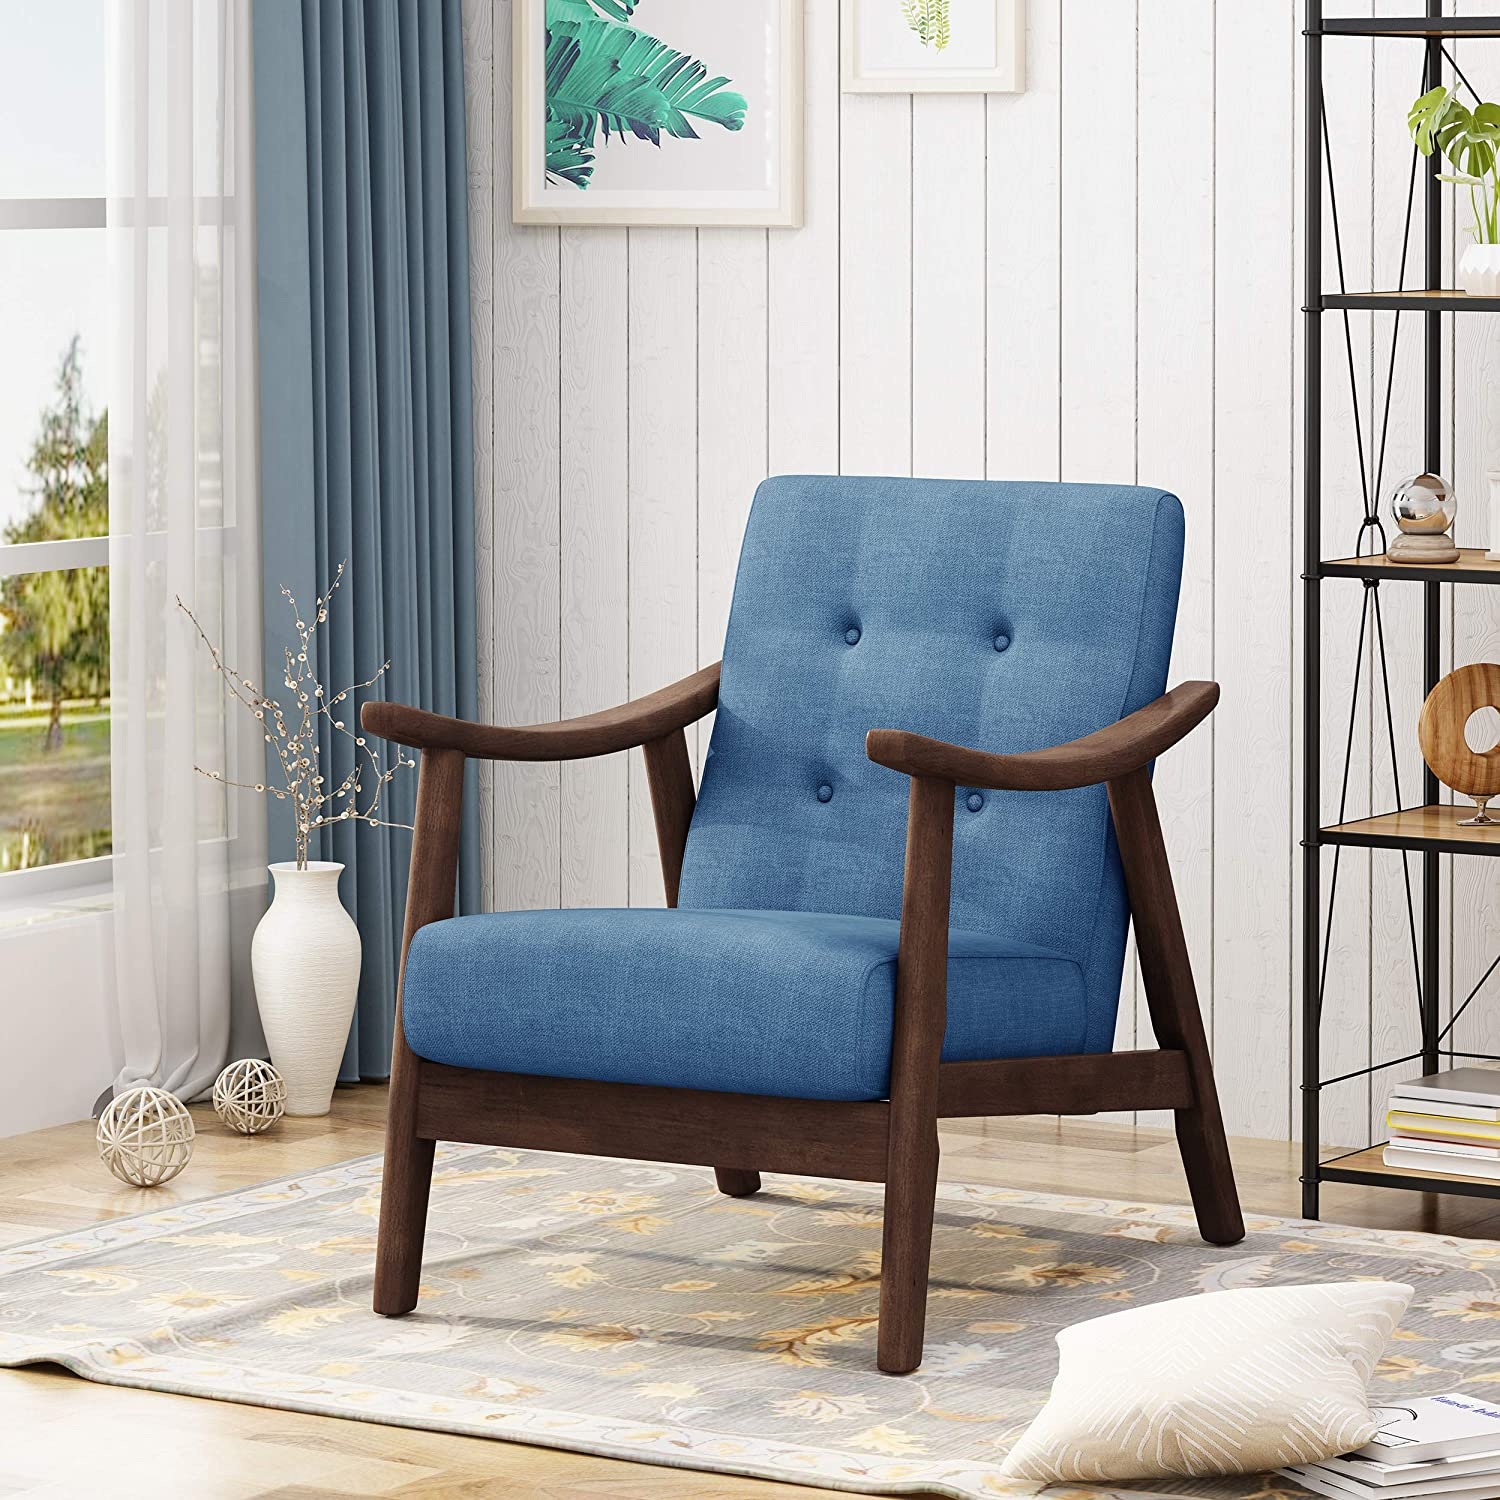 Blue Modern Accent Chairs.Great Deal Furniture 305849 Aurora Mid Century Modern Accent Chair Navy Blue Brown